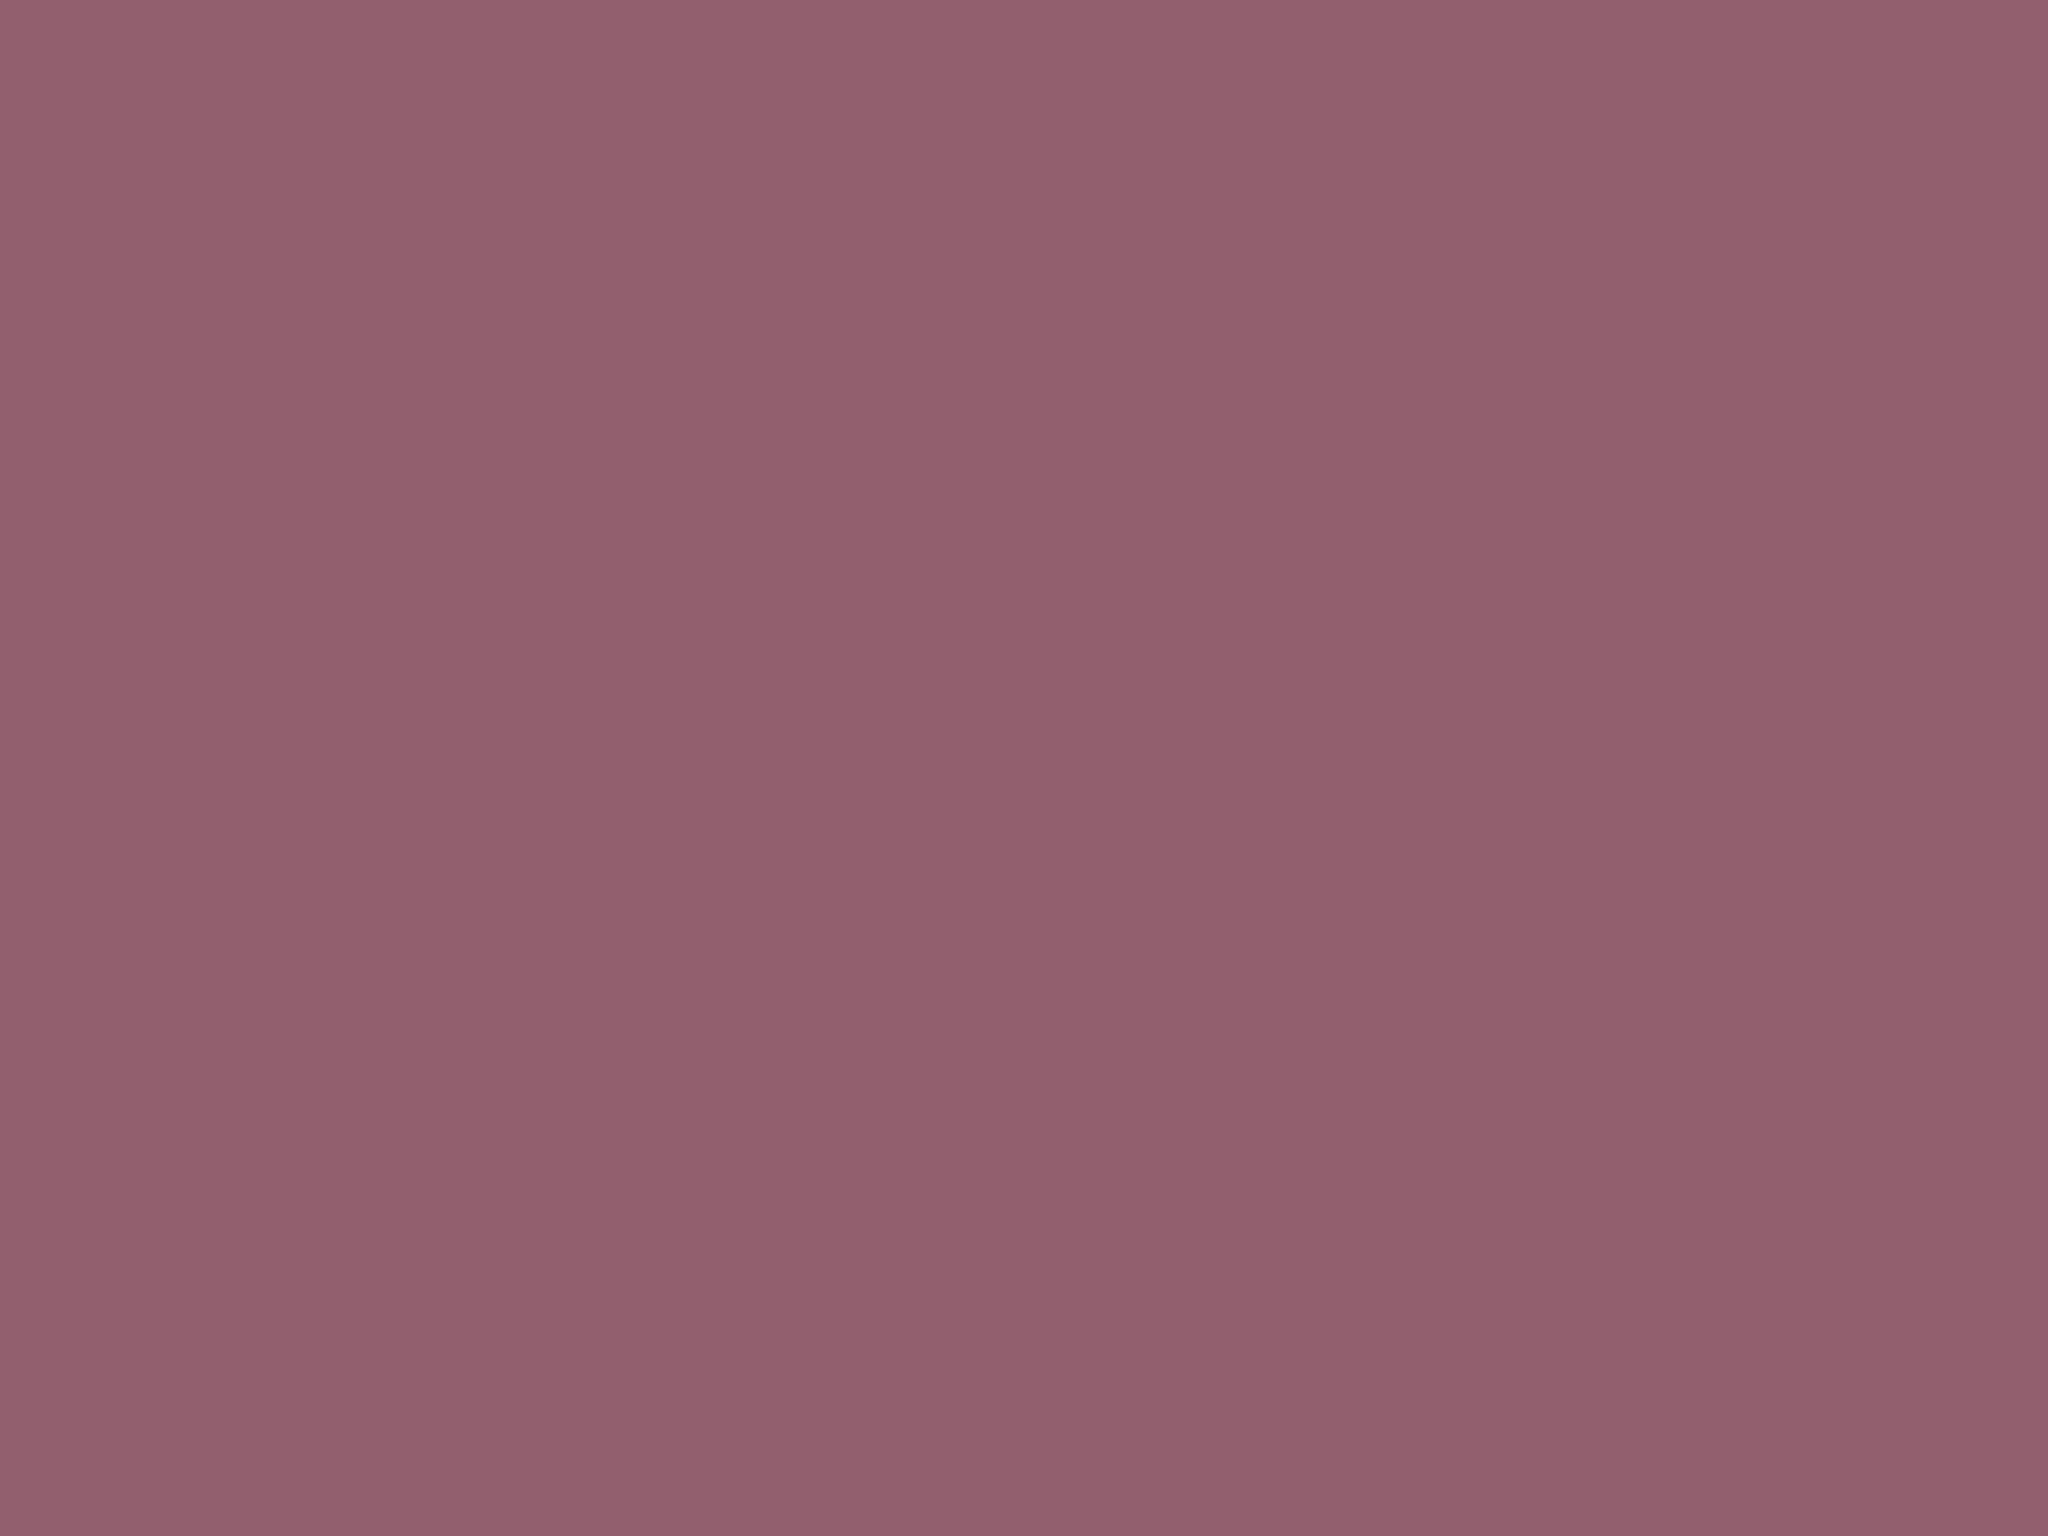 2048x1536 Raspberry Glace Solid Color Background